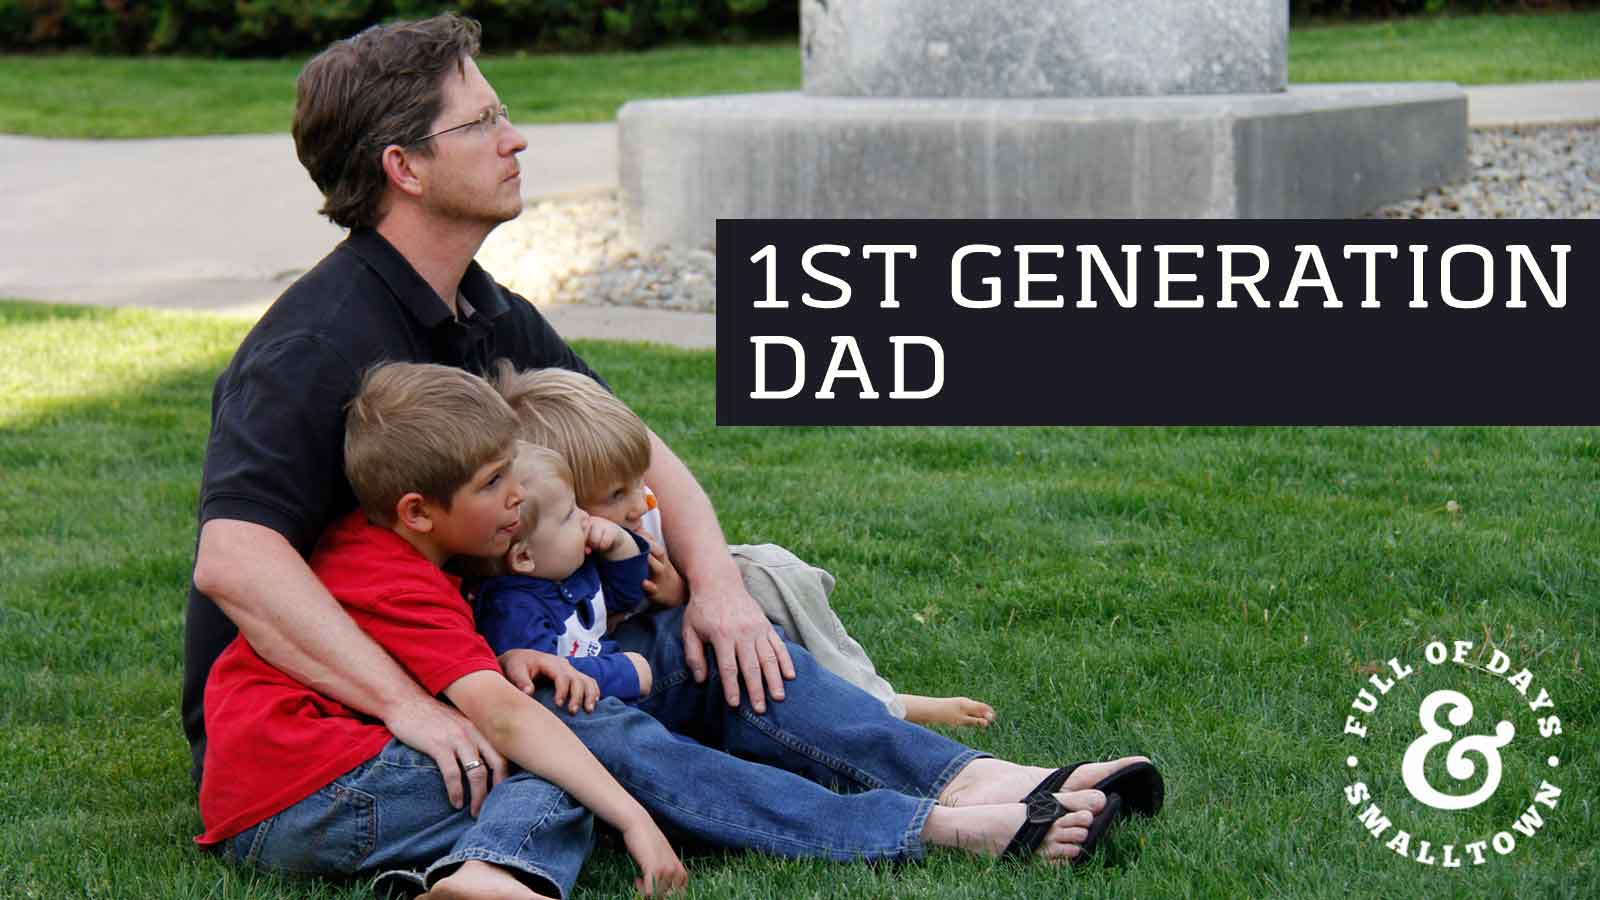 Father and Sons Sitting Together on a Grass Lawn Header